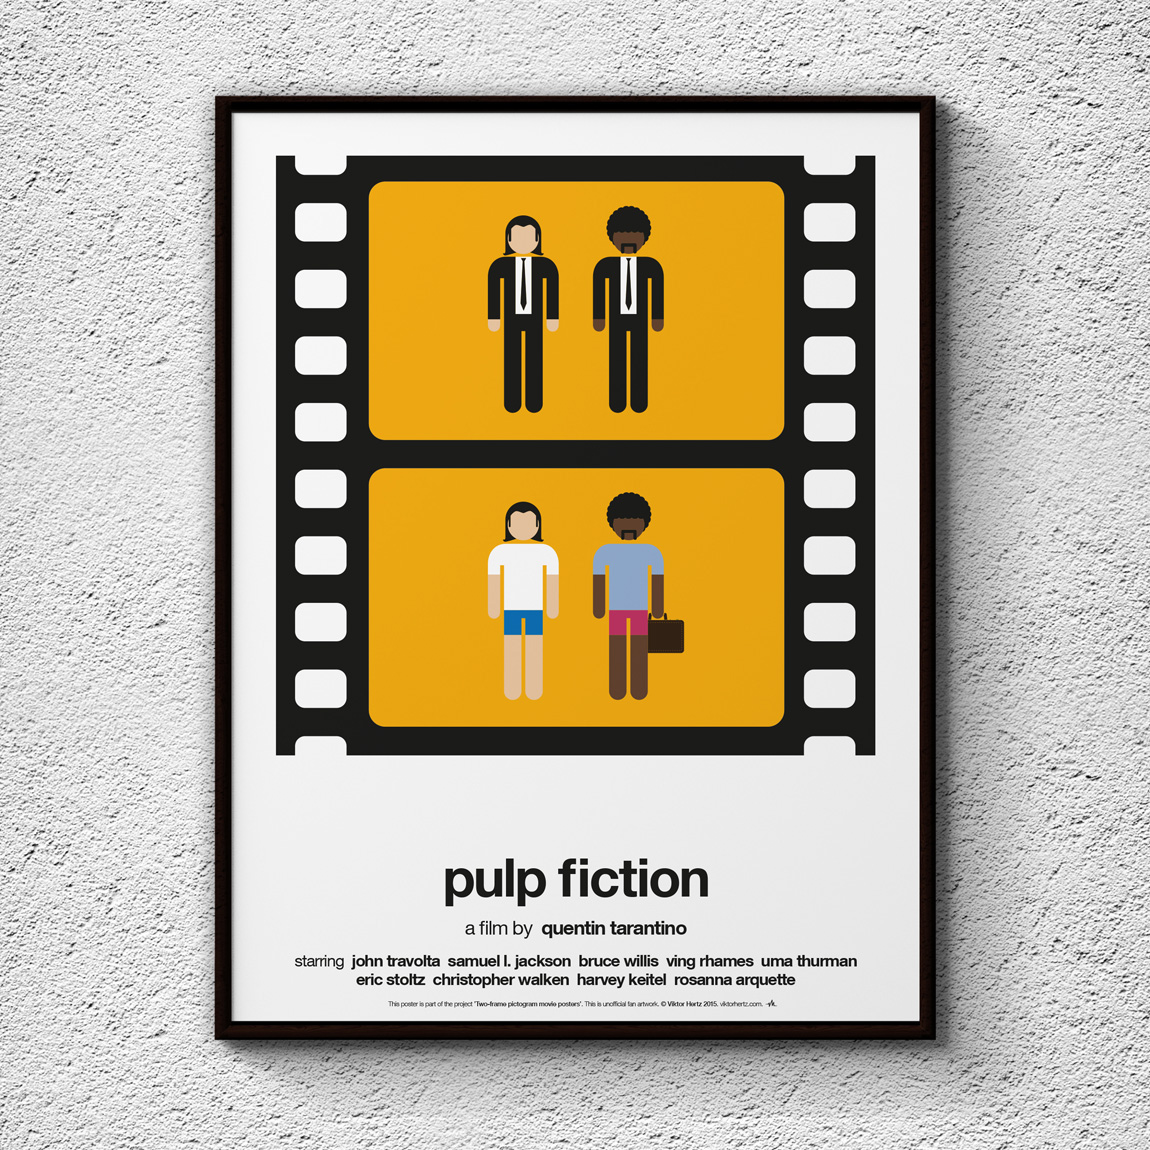 Two-frame Pictogram Movie Posters on Behance